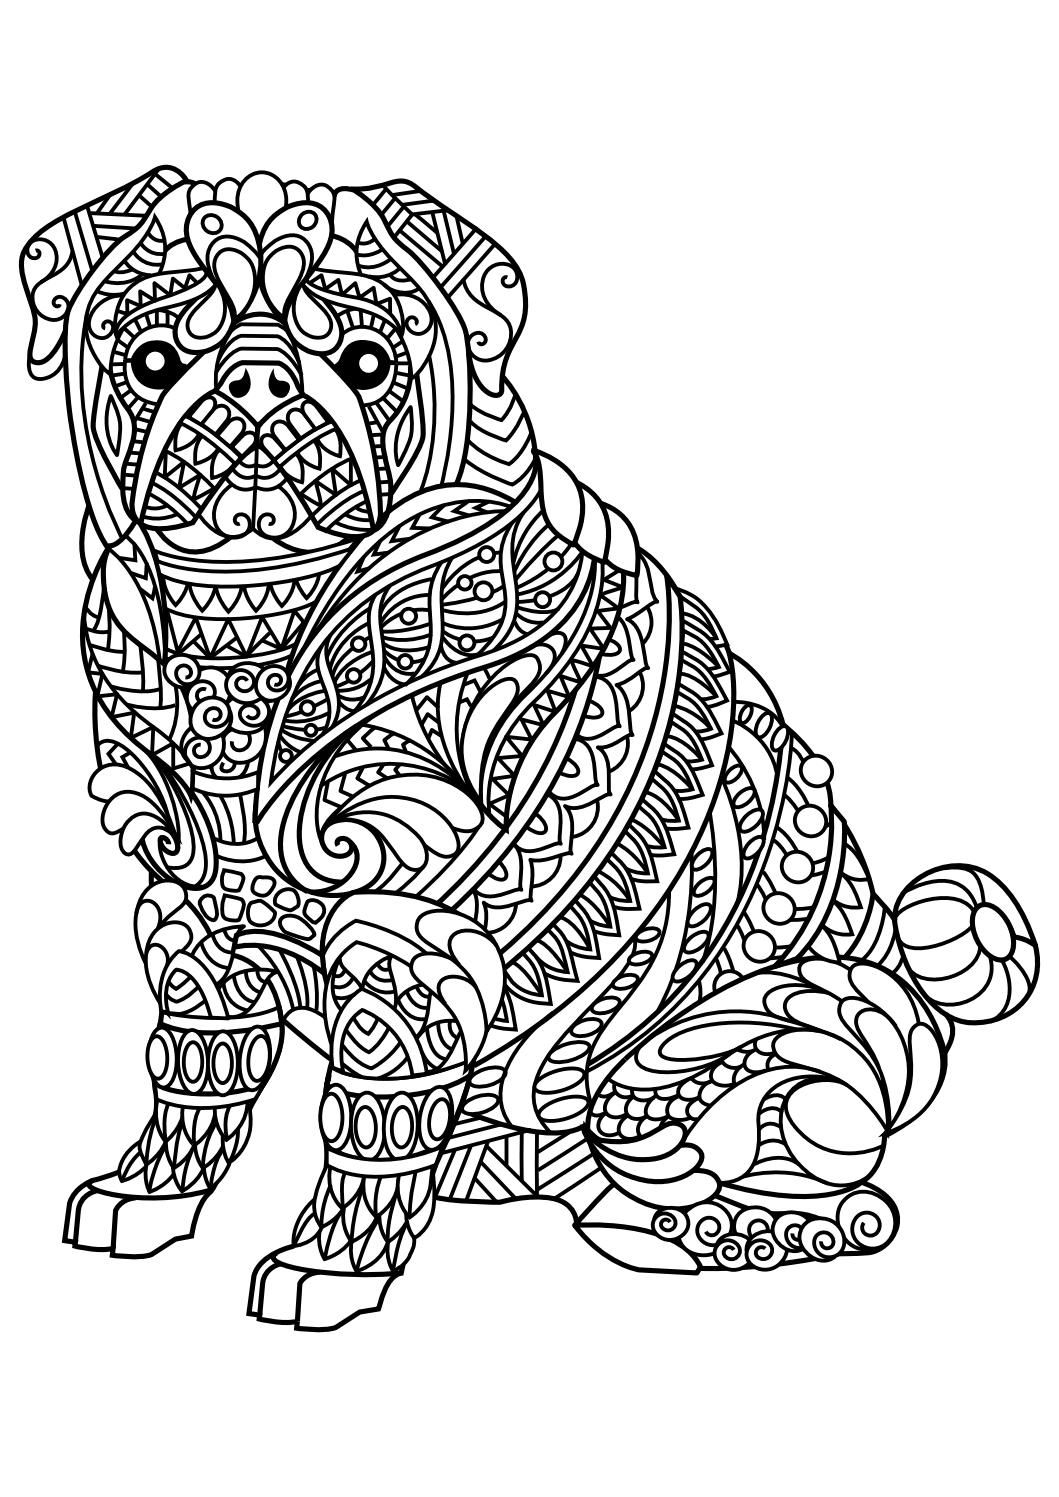 Chiwawa Coloring Pages  Download 5d - Free For Children